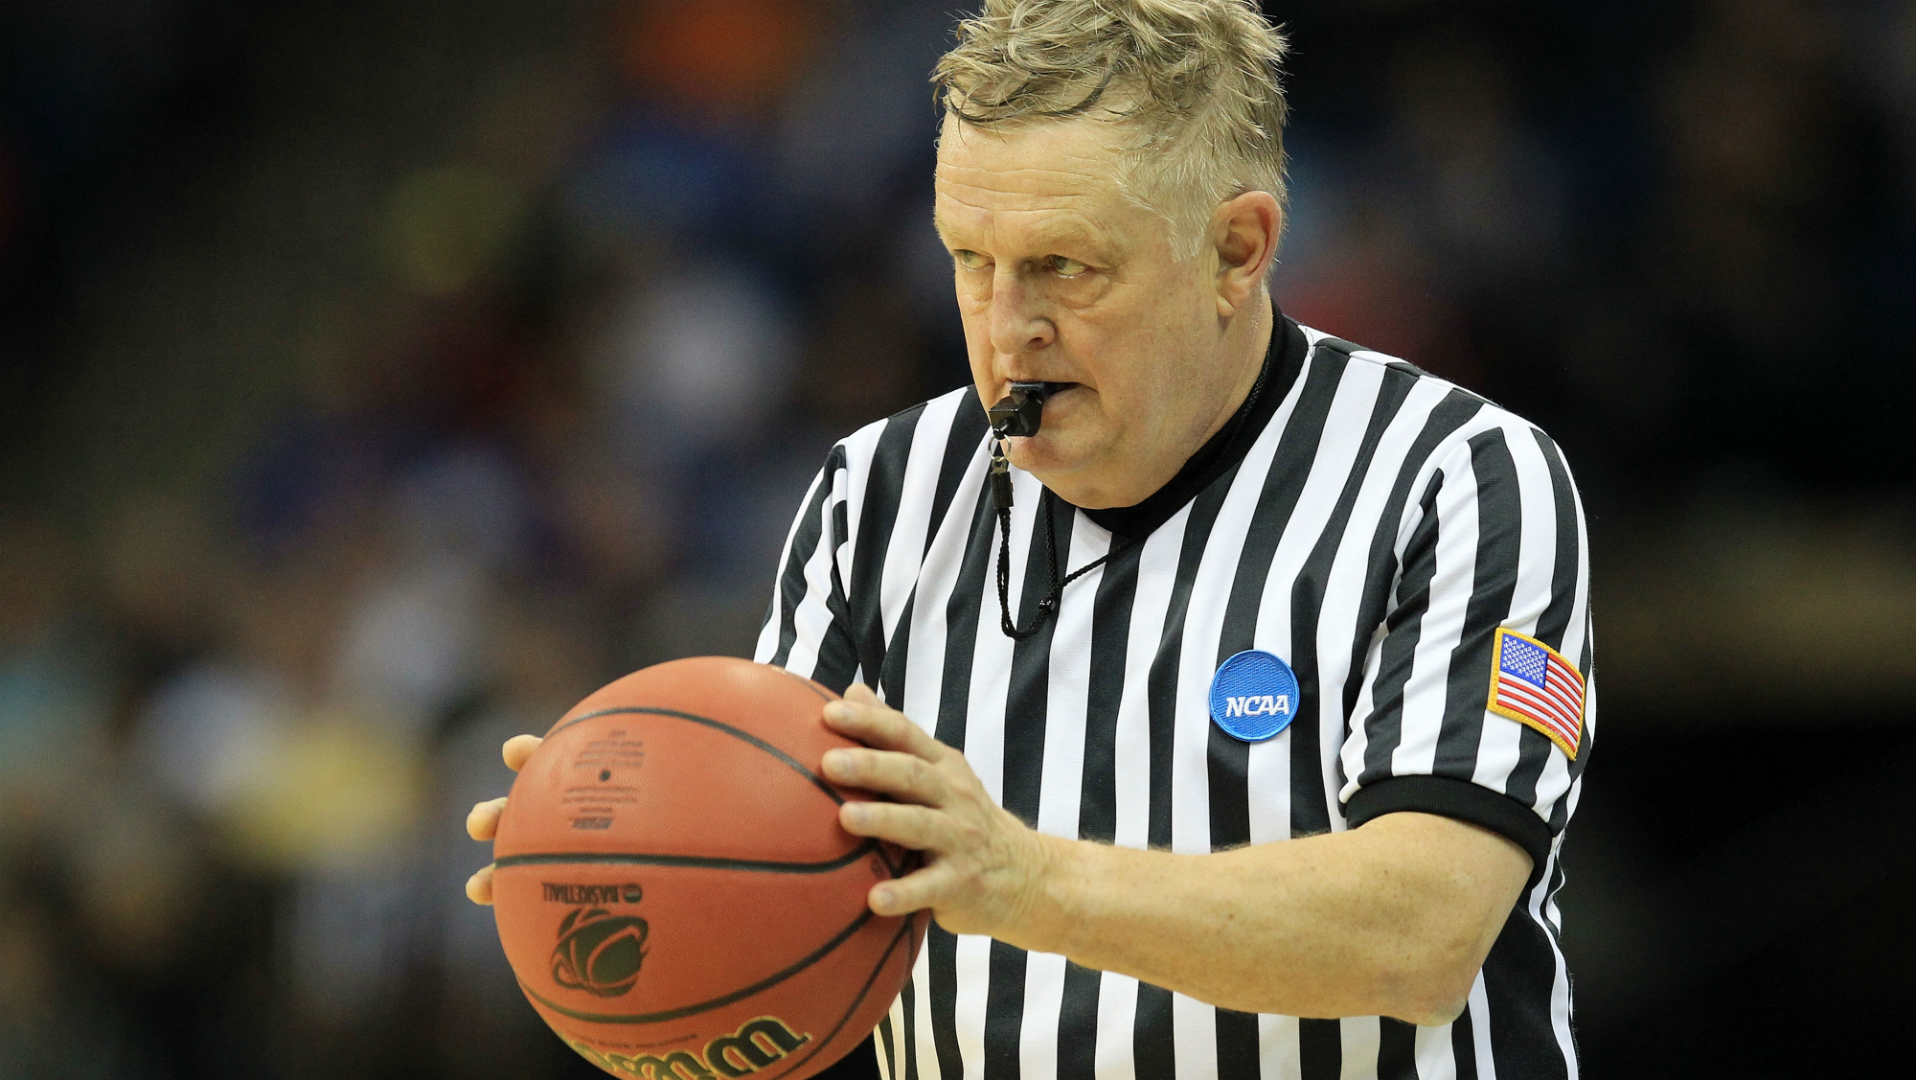 NCAA referee Jim Burr retires after 39 years | NCAA Basketball | Sporting News